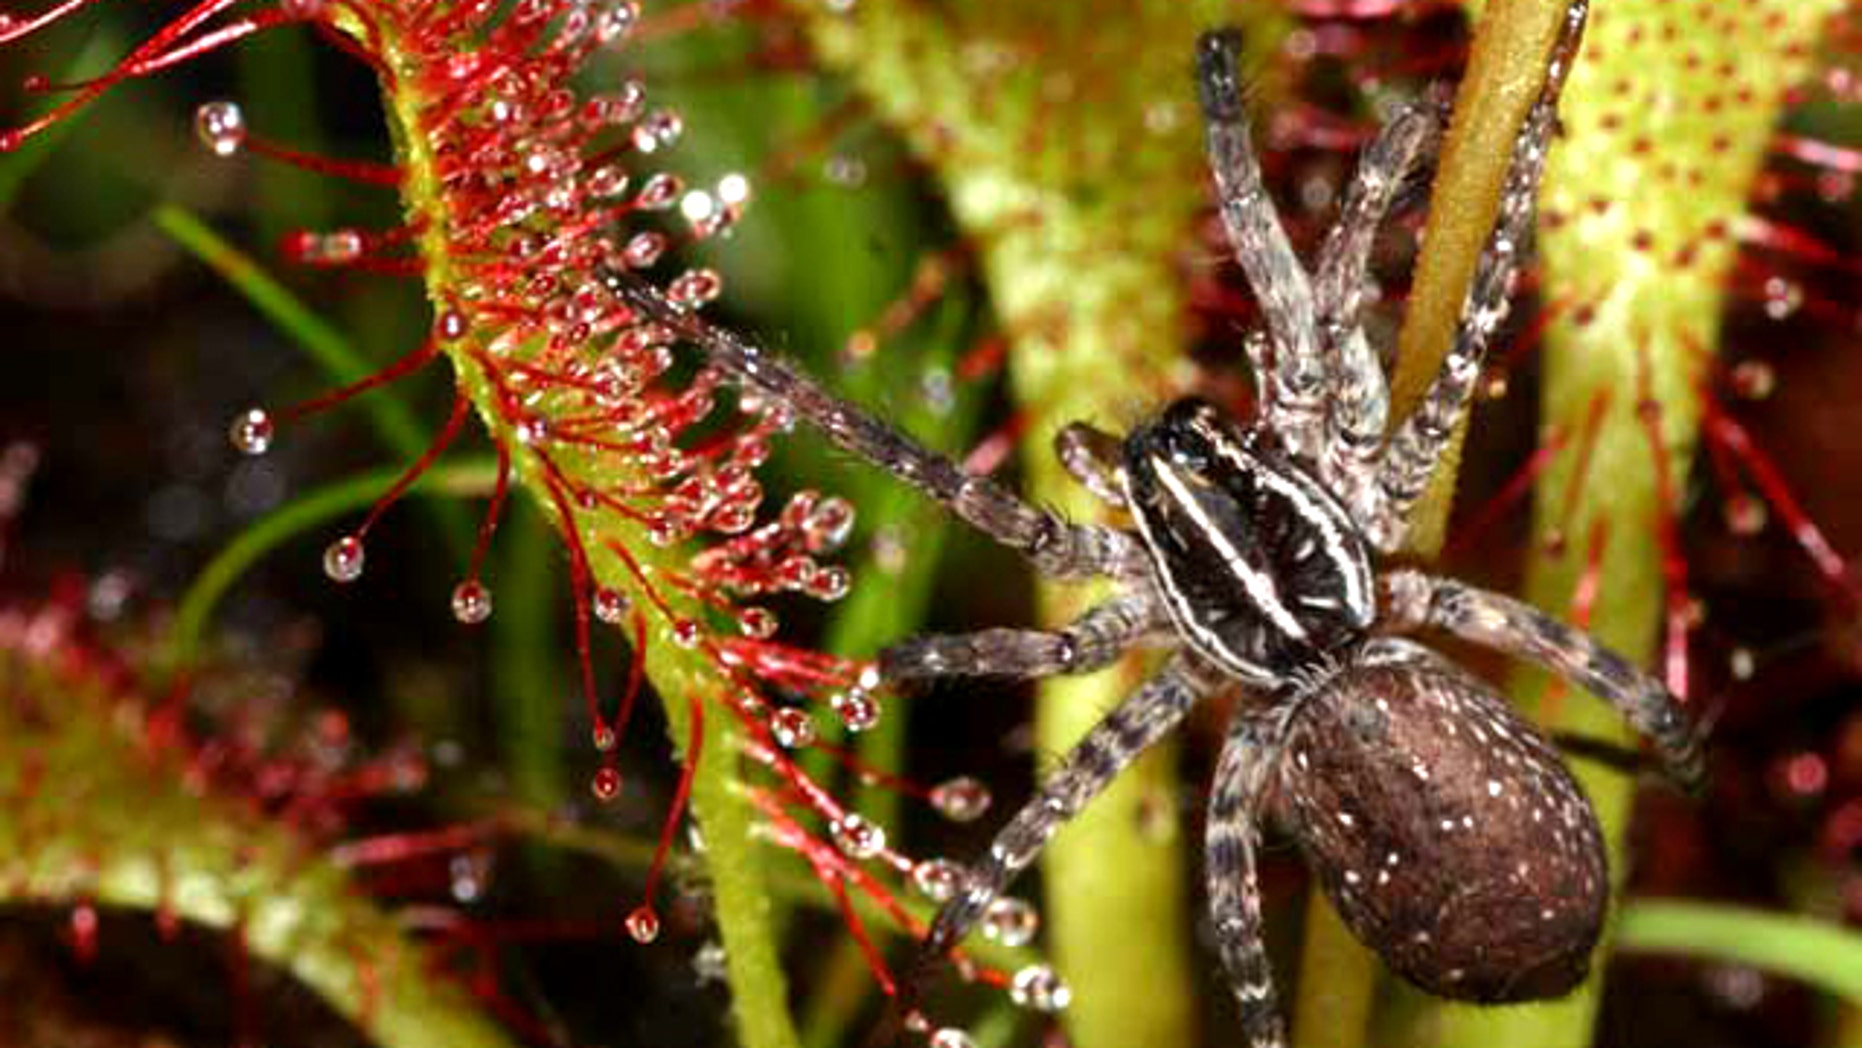 The carnivorous sundew and the wolf spider eat the same prey in the wild.